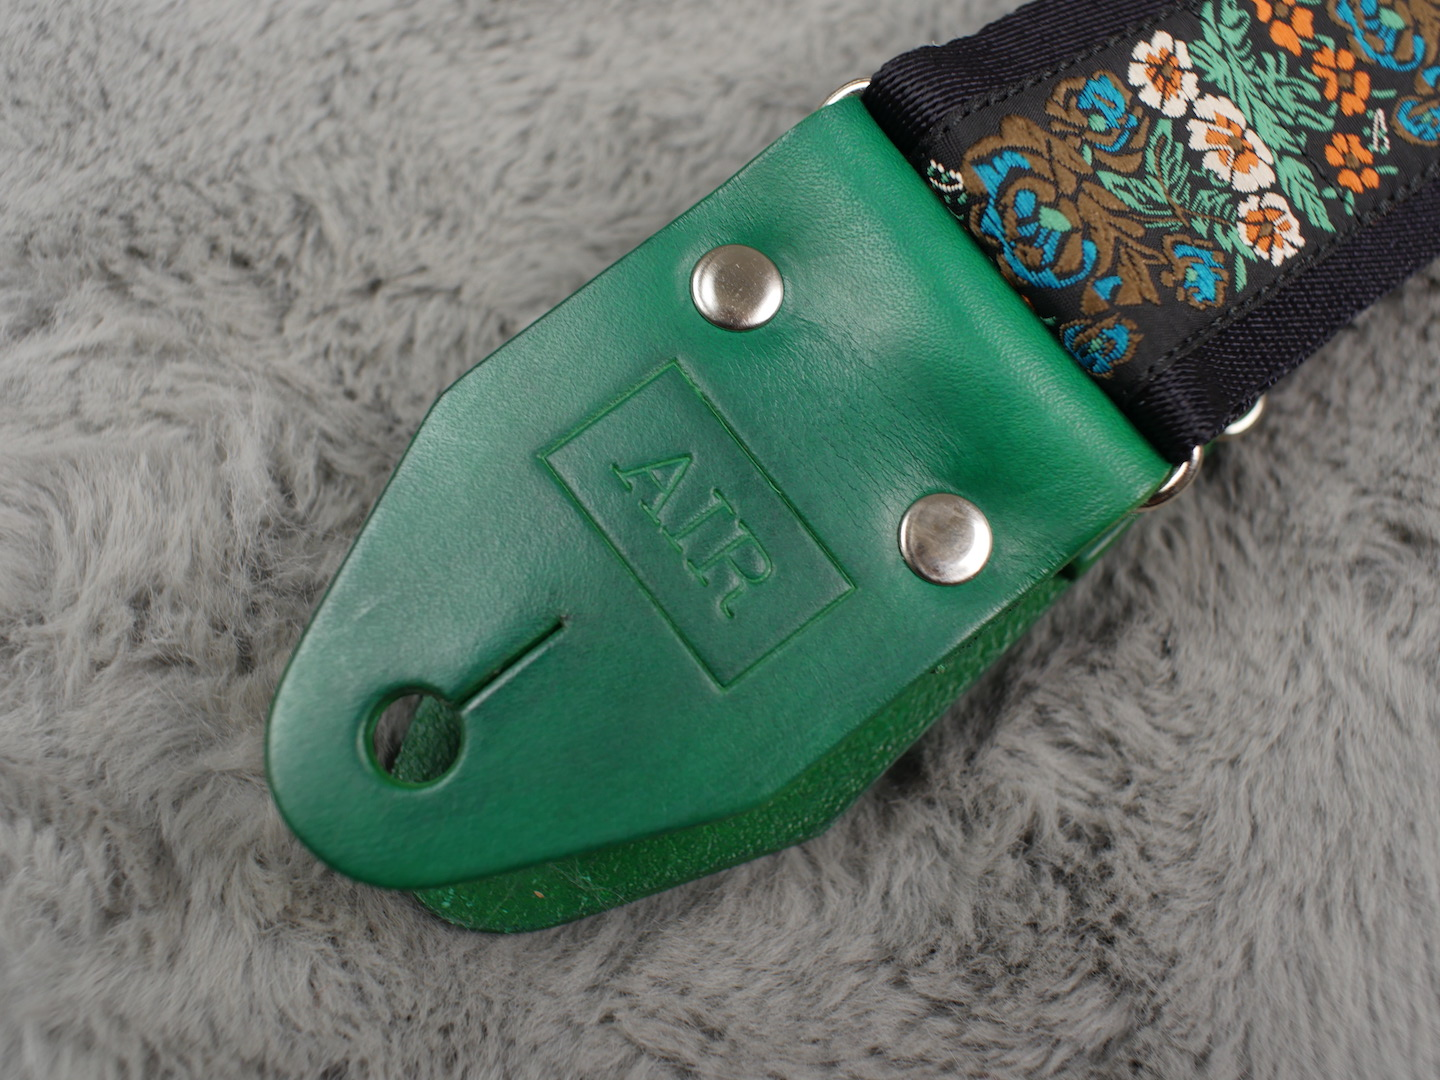 Air Straps Limited Edition 'Eden' Guitar Strap